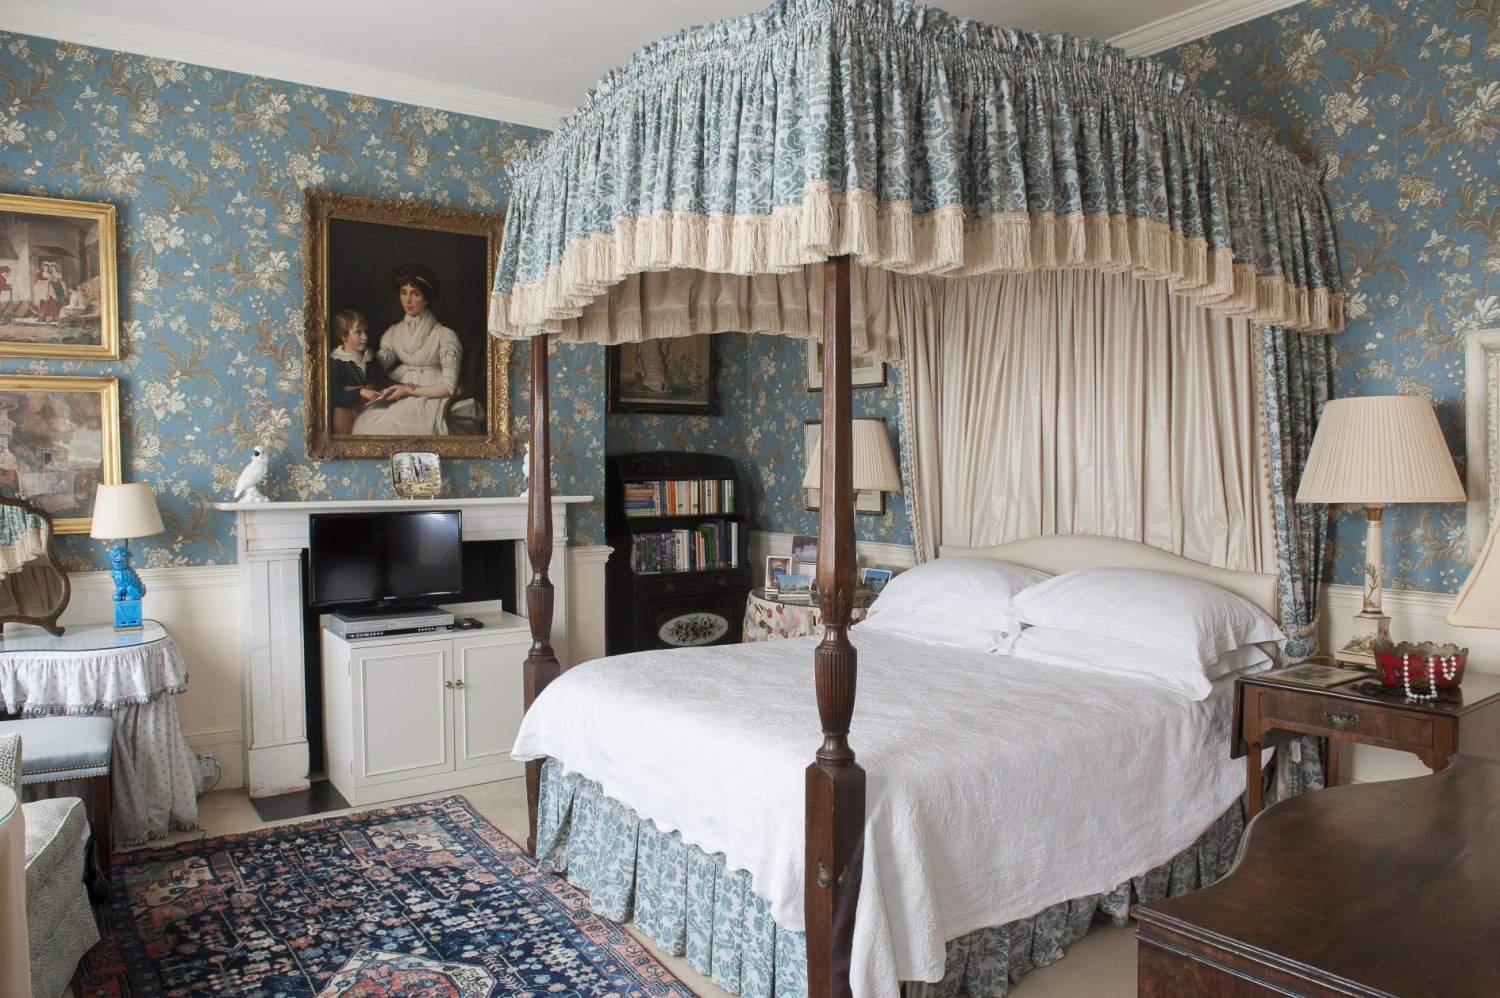 The impressive Blue Room, with its slate blue French wallpaper, looks reminiscent of a Colonial American style